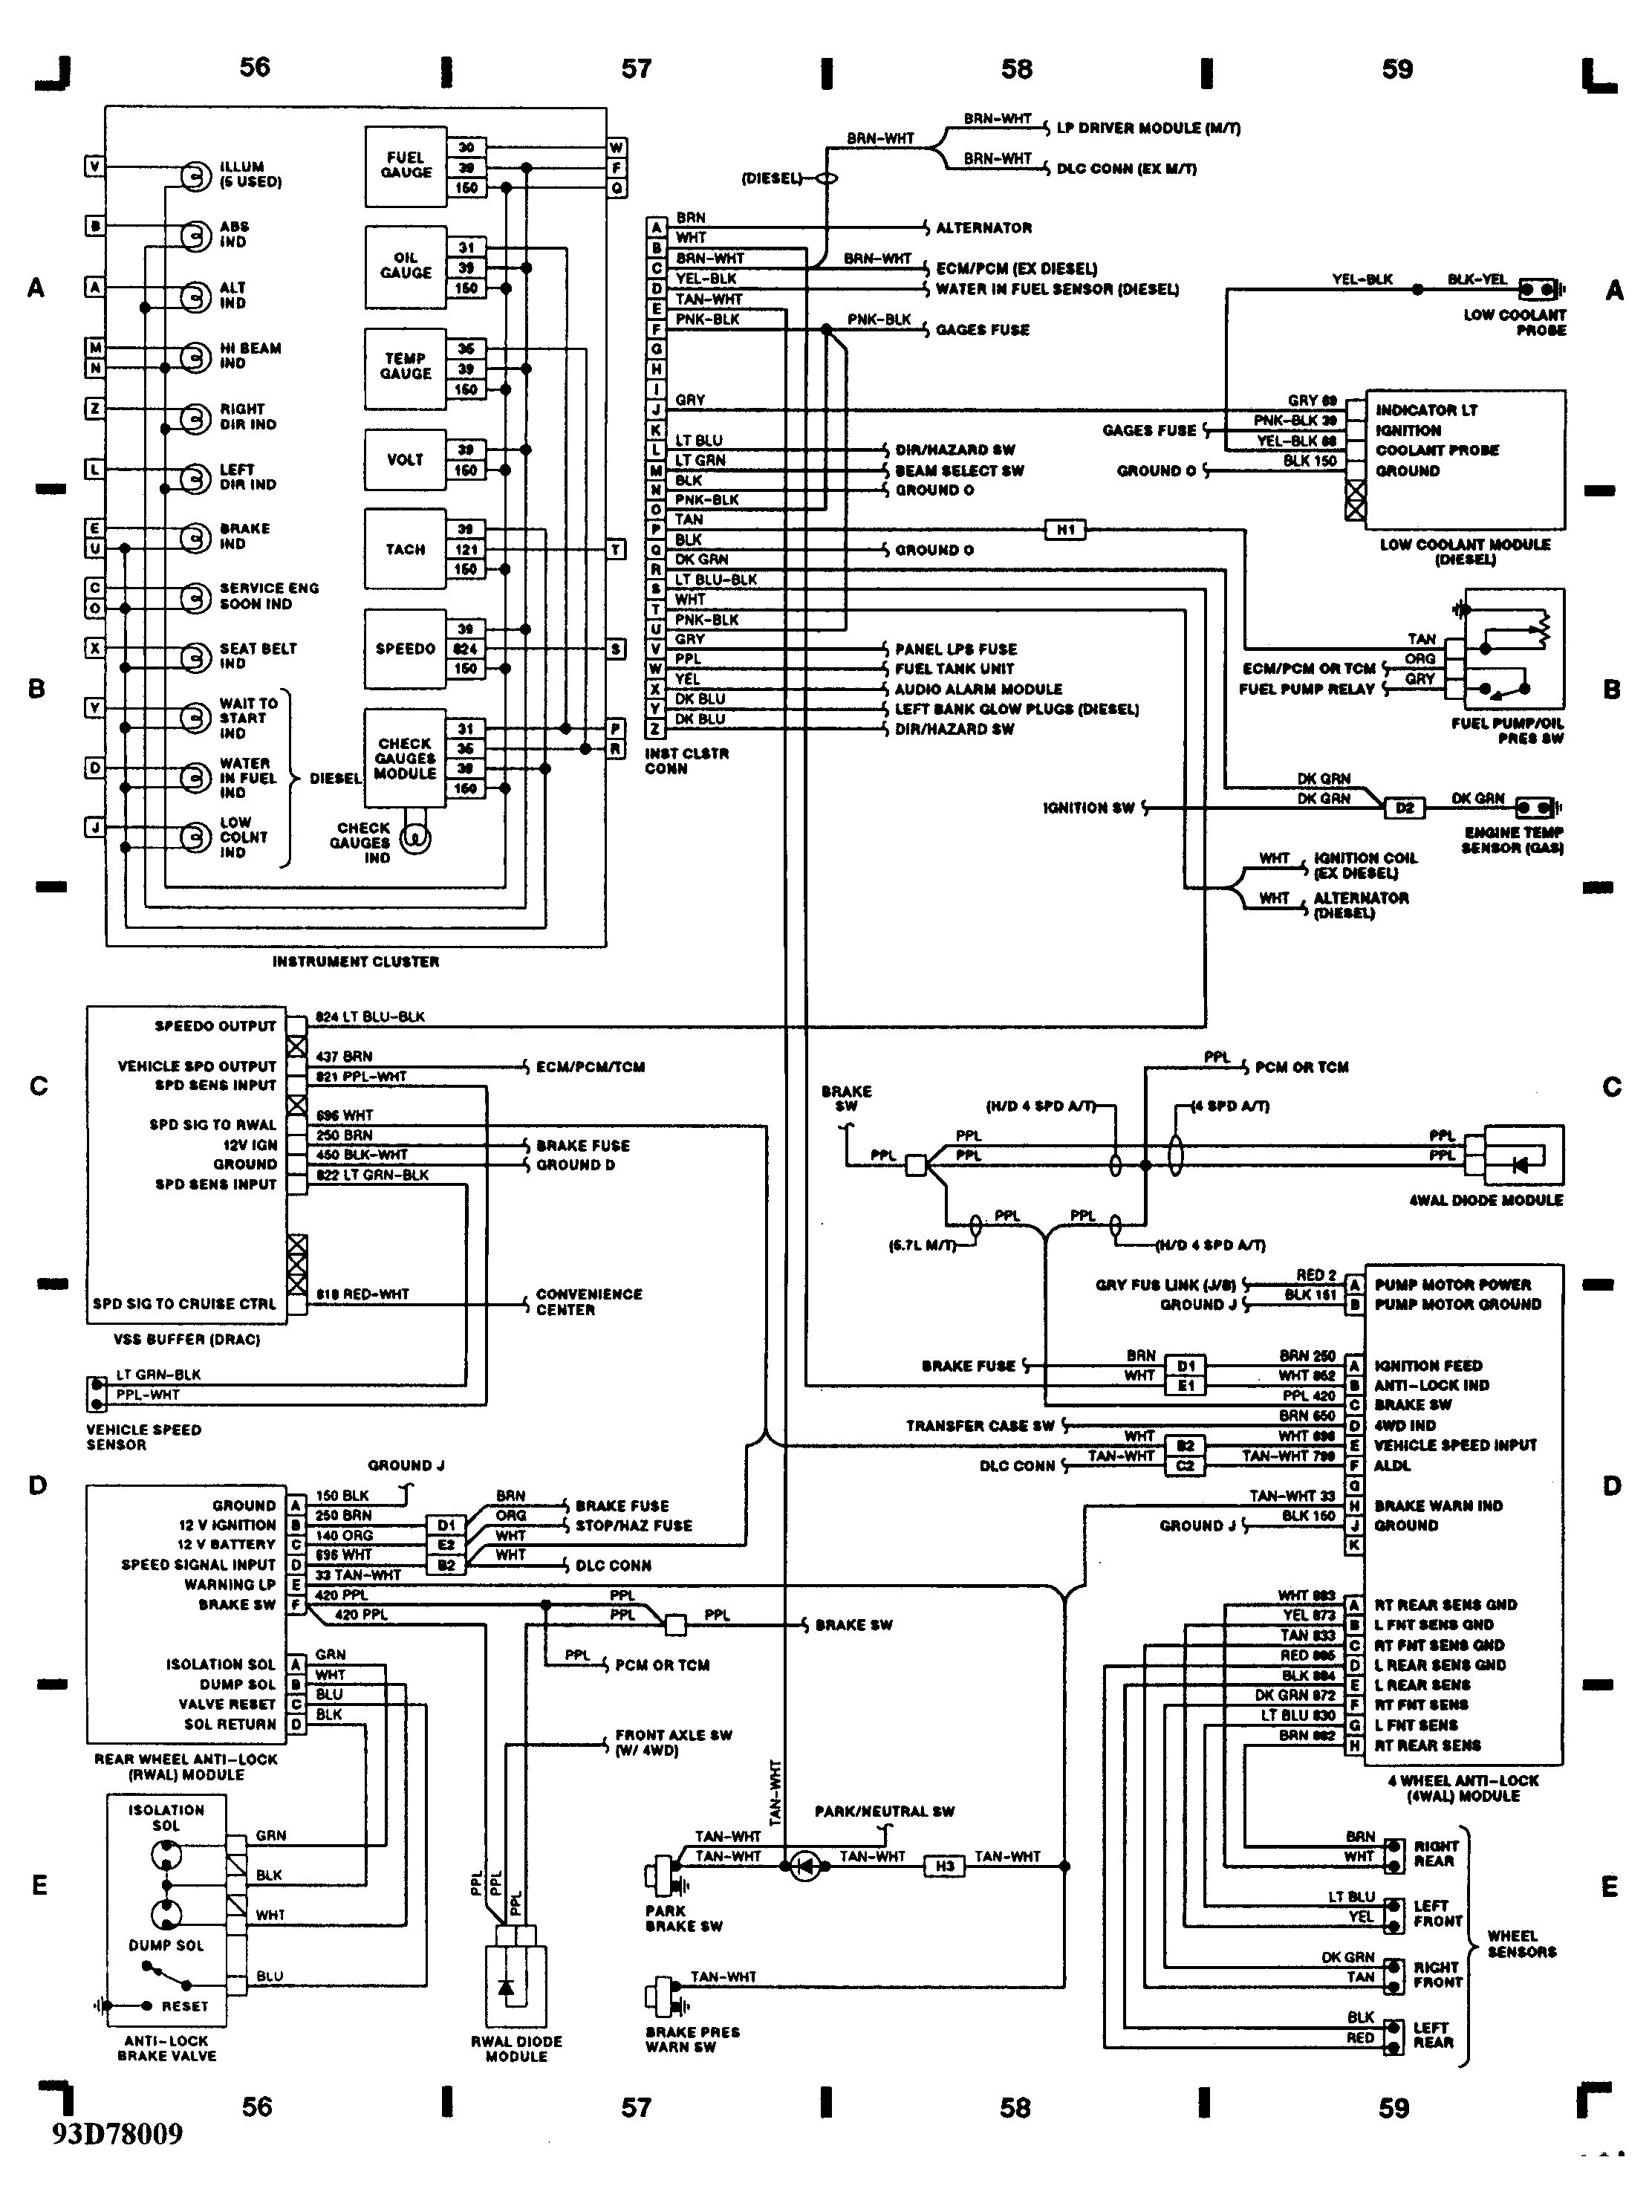 2004 Chevrolet Wiring Diagram Brake - wiring diagram switches-speed -  switches-speed.teglieromane.itTeglie Romane